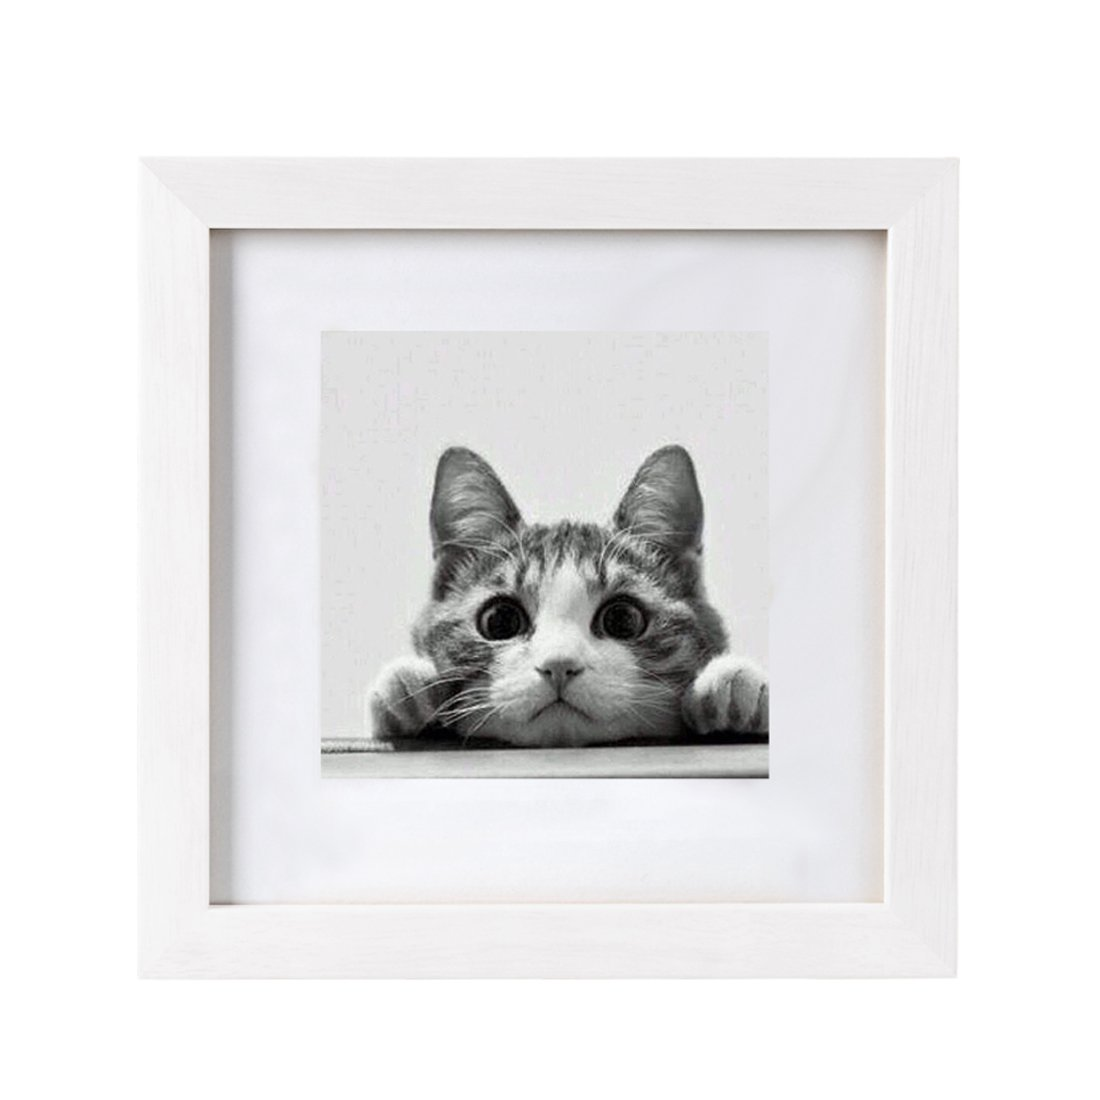 BOJIN 10x10 Picture Frames Matted to 6x6 Photo Poster Frame for Wall Hanging-Black BOJINUS BOJ003275W